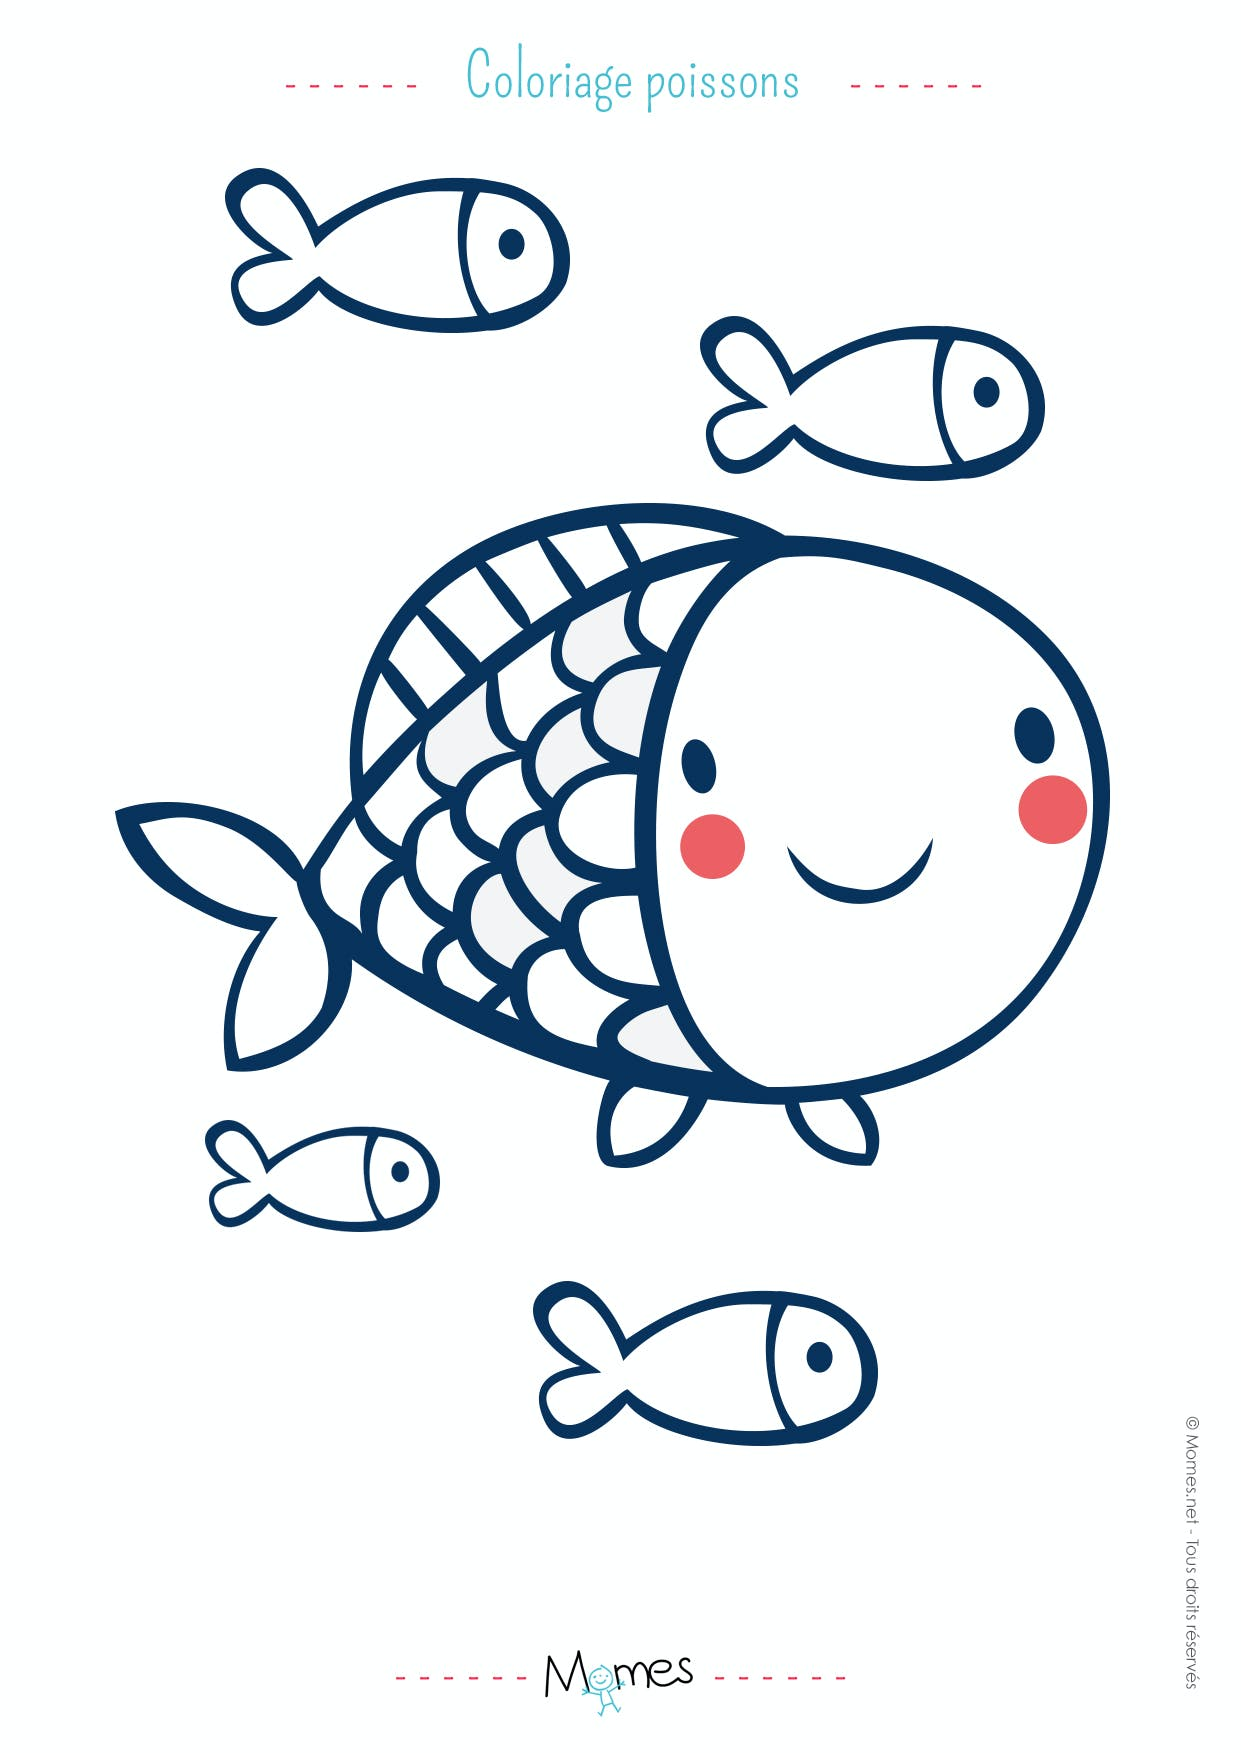 Coloriage poisson d 39 avril - Coloriage avril ...